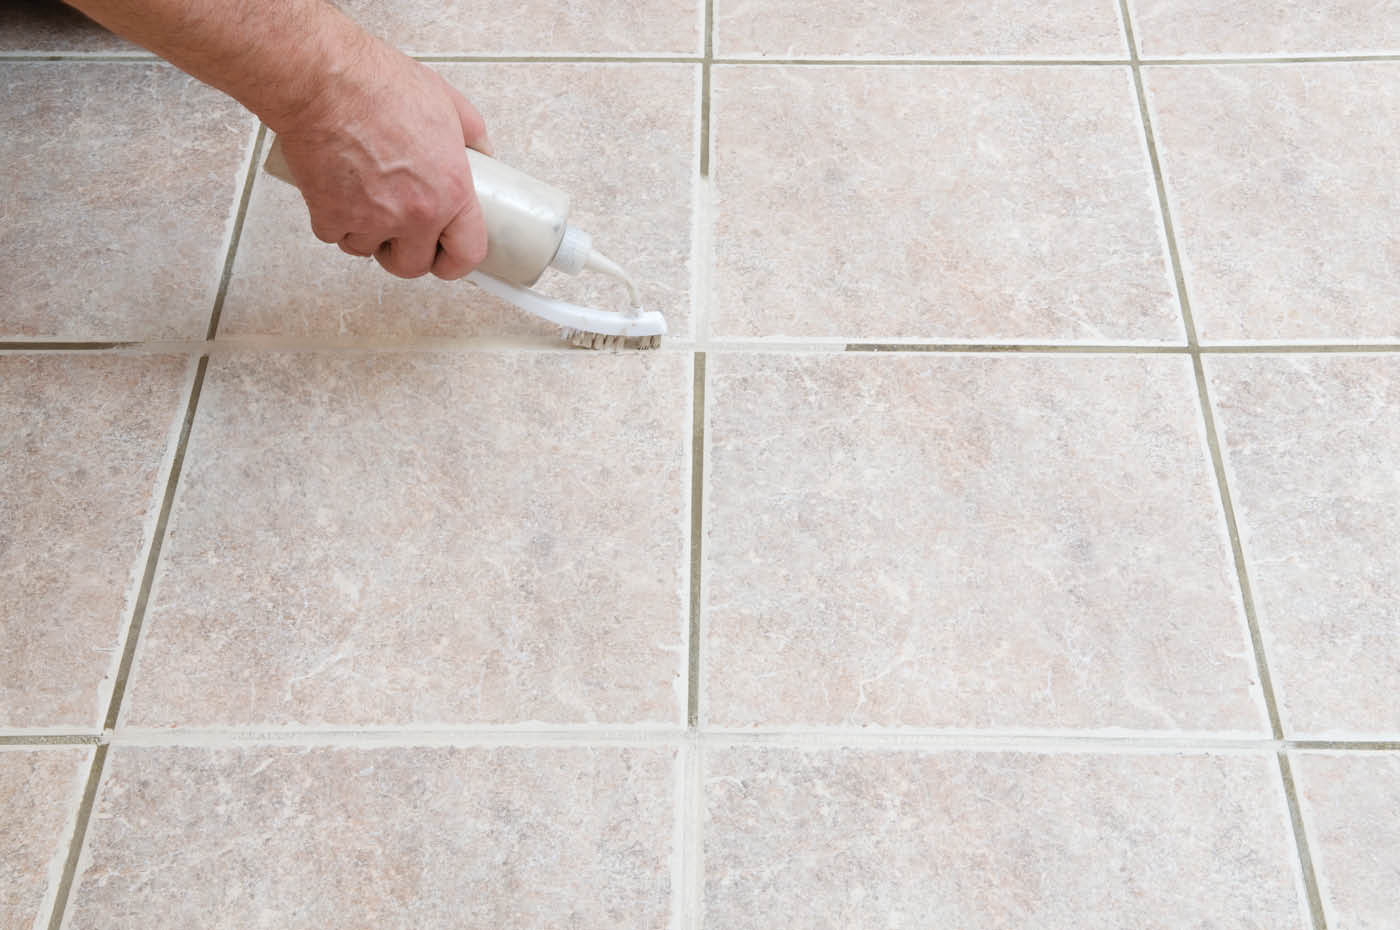 Simple routines to cleaning ceramic tile floors homesfeed for How to clean floor stains